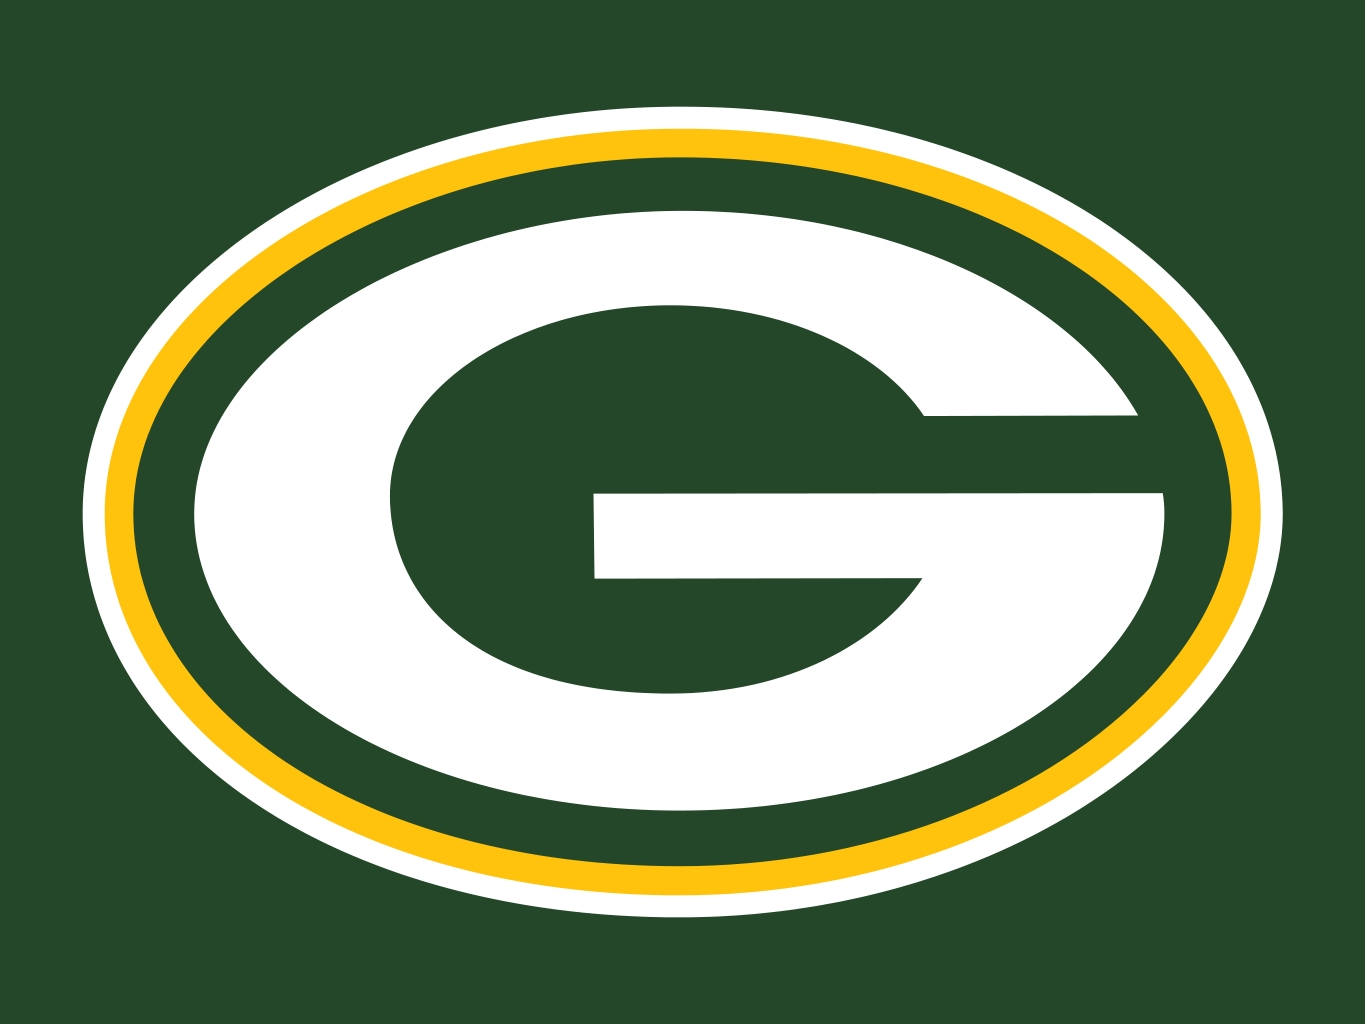 [NFL] Parola all'Insider: Green Bay Packers - Gianni Cidioli